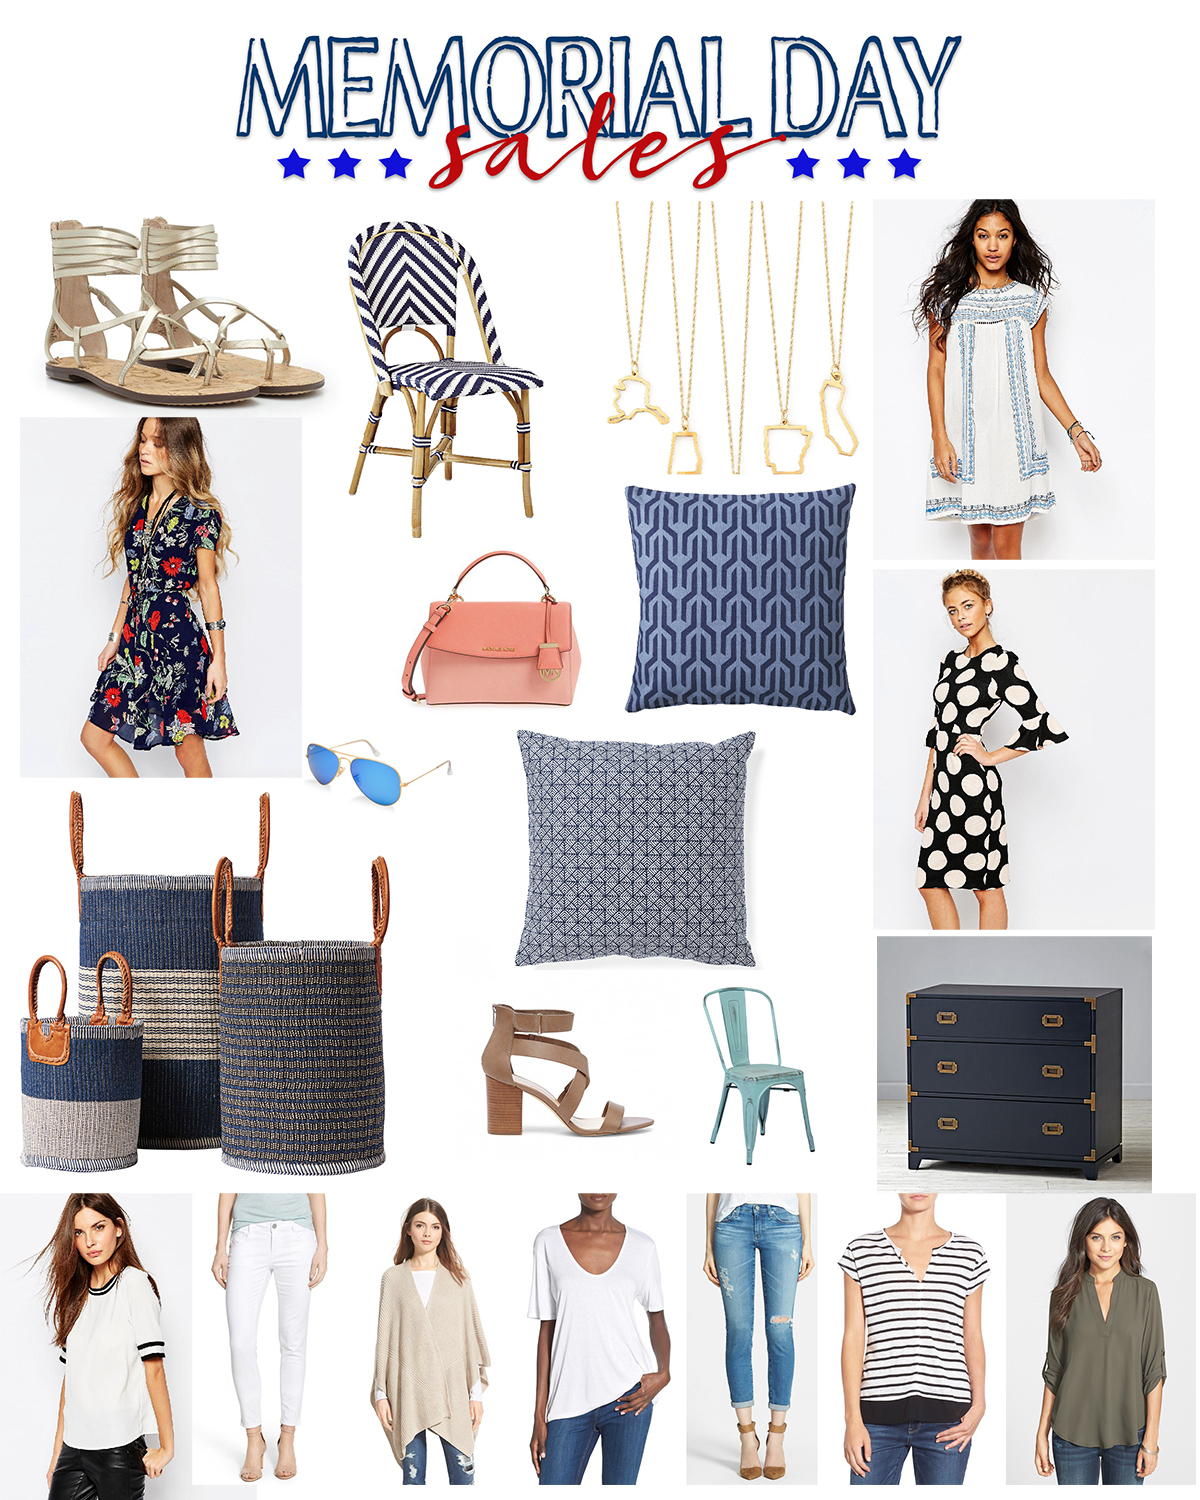 Memorial day sales collage 150